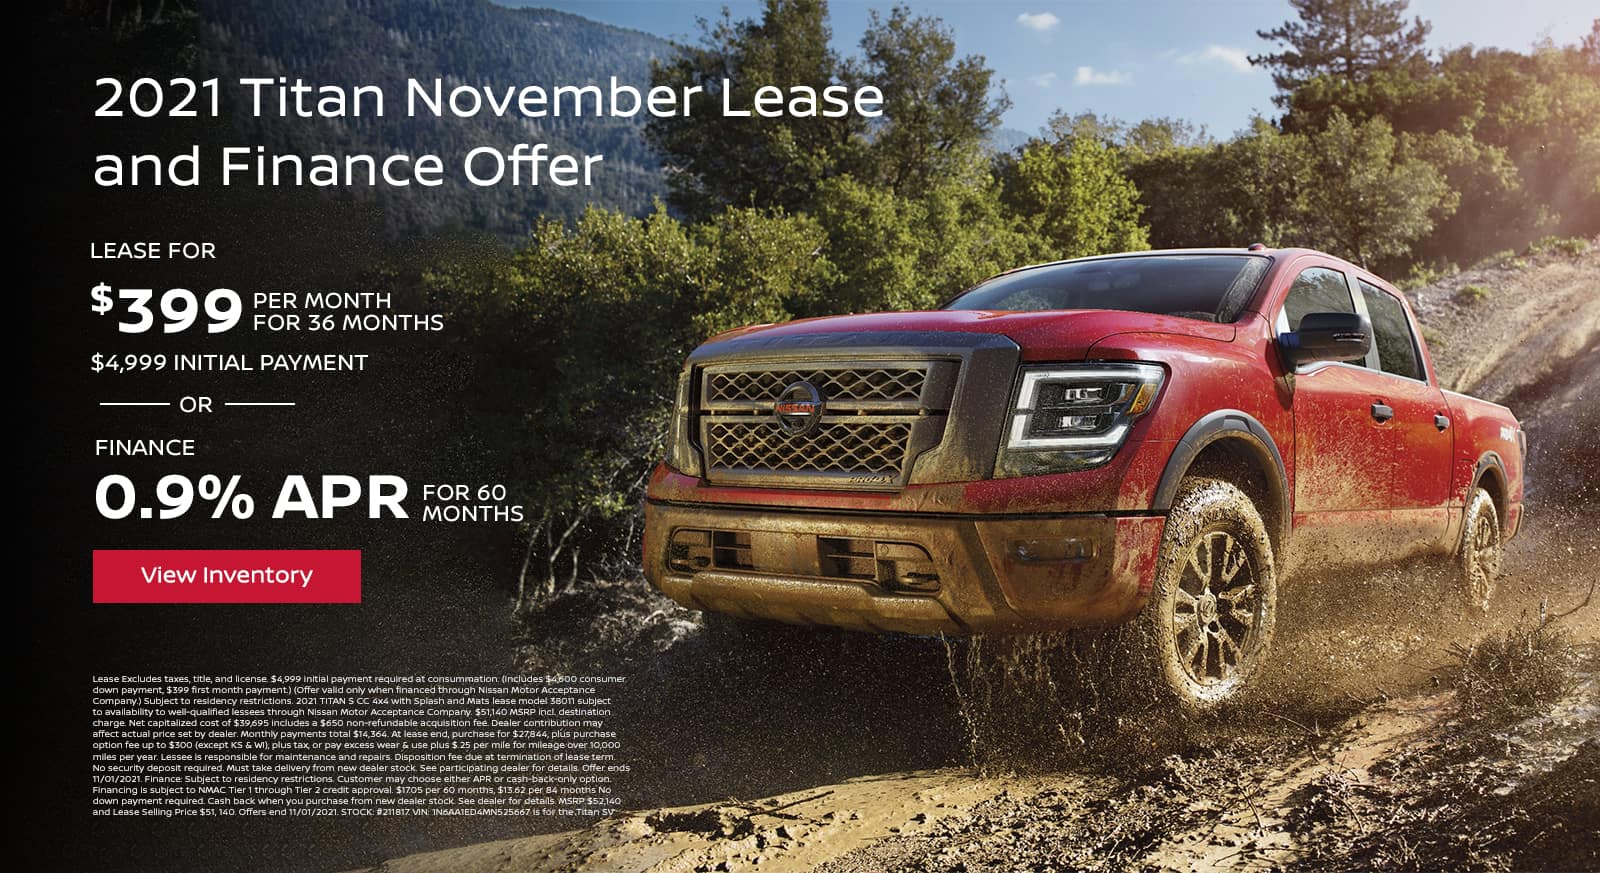 2021 Nissan Titan Lease for $399| 36 Months | $4,999 Inital Payment or 0.9& APR Financing for 60 Months.